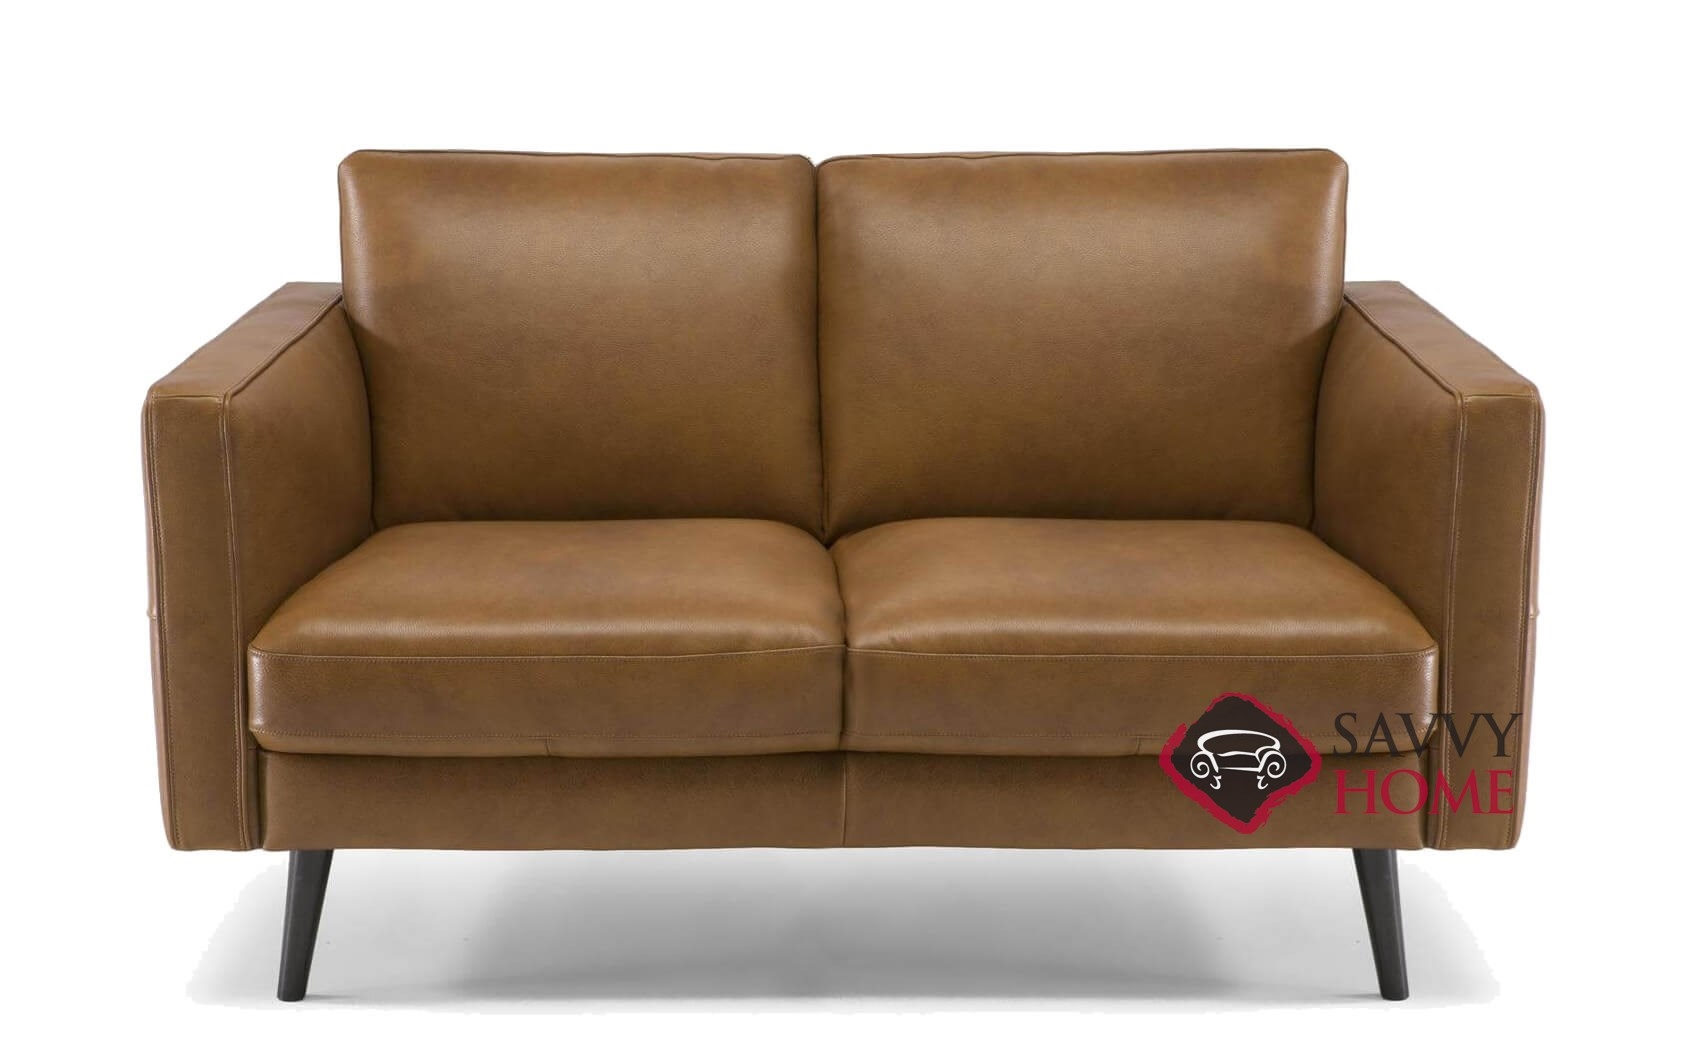 Marvelous Destrezza C092 005 Leather Loveseat By Natuzzi Gmtry Best Dining Table And Chair Ideas Images Gmtryco